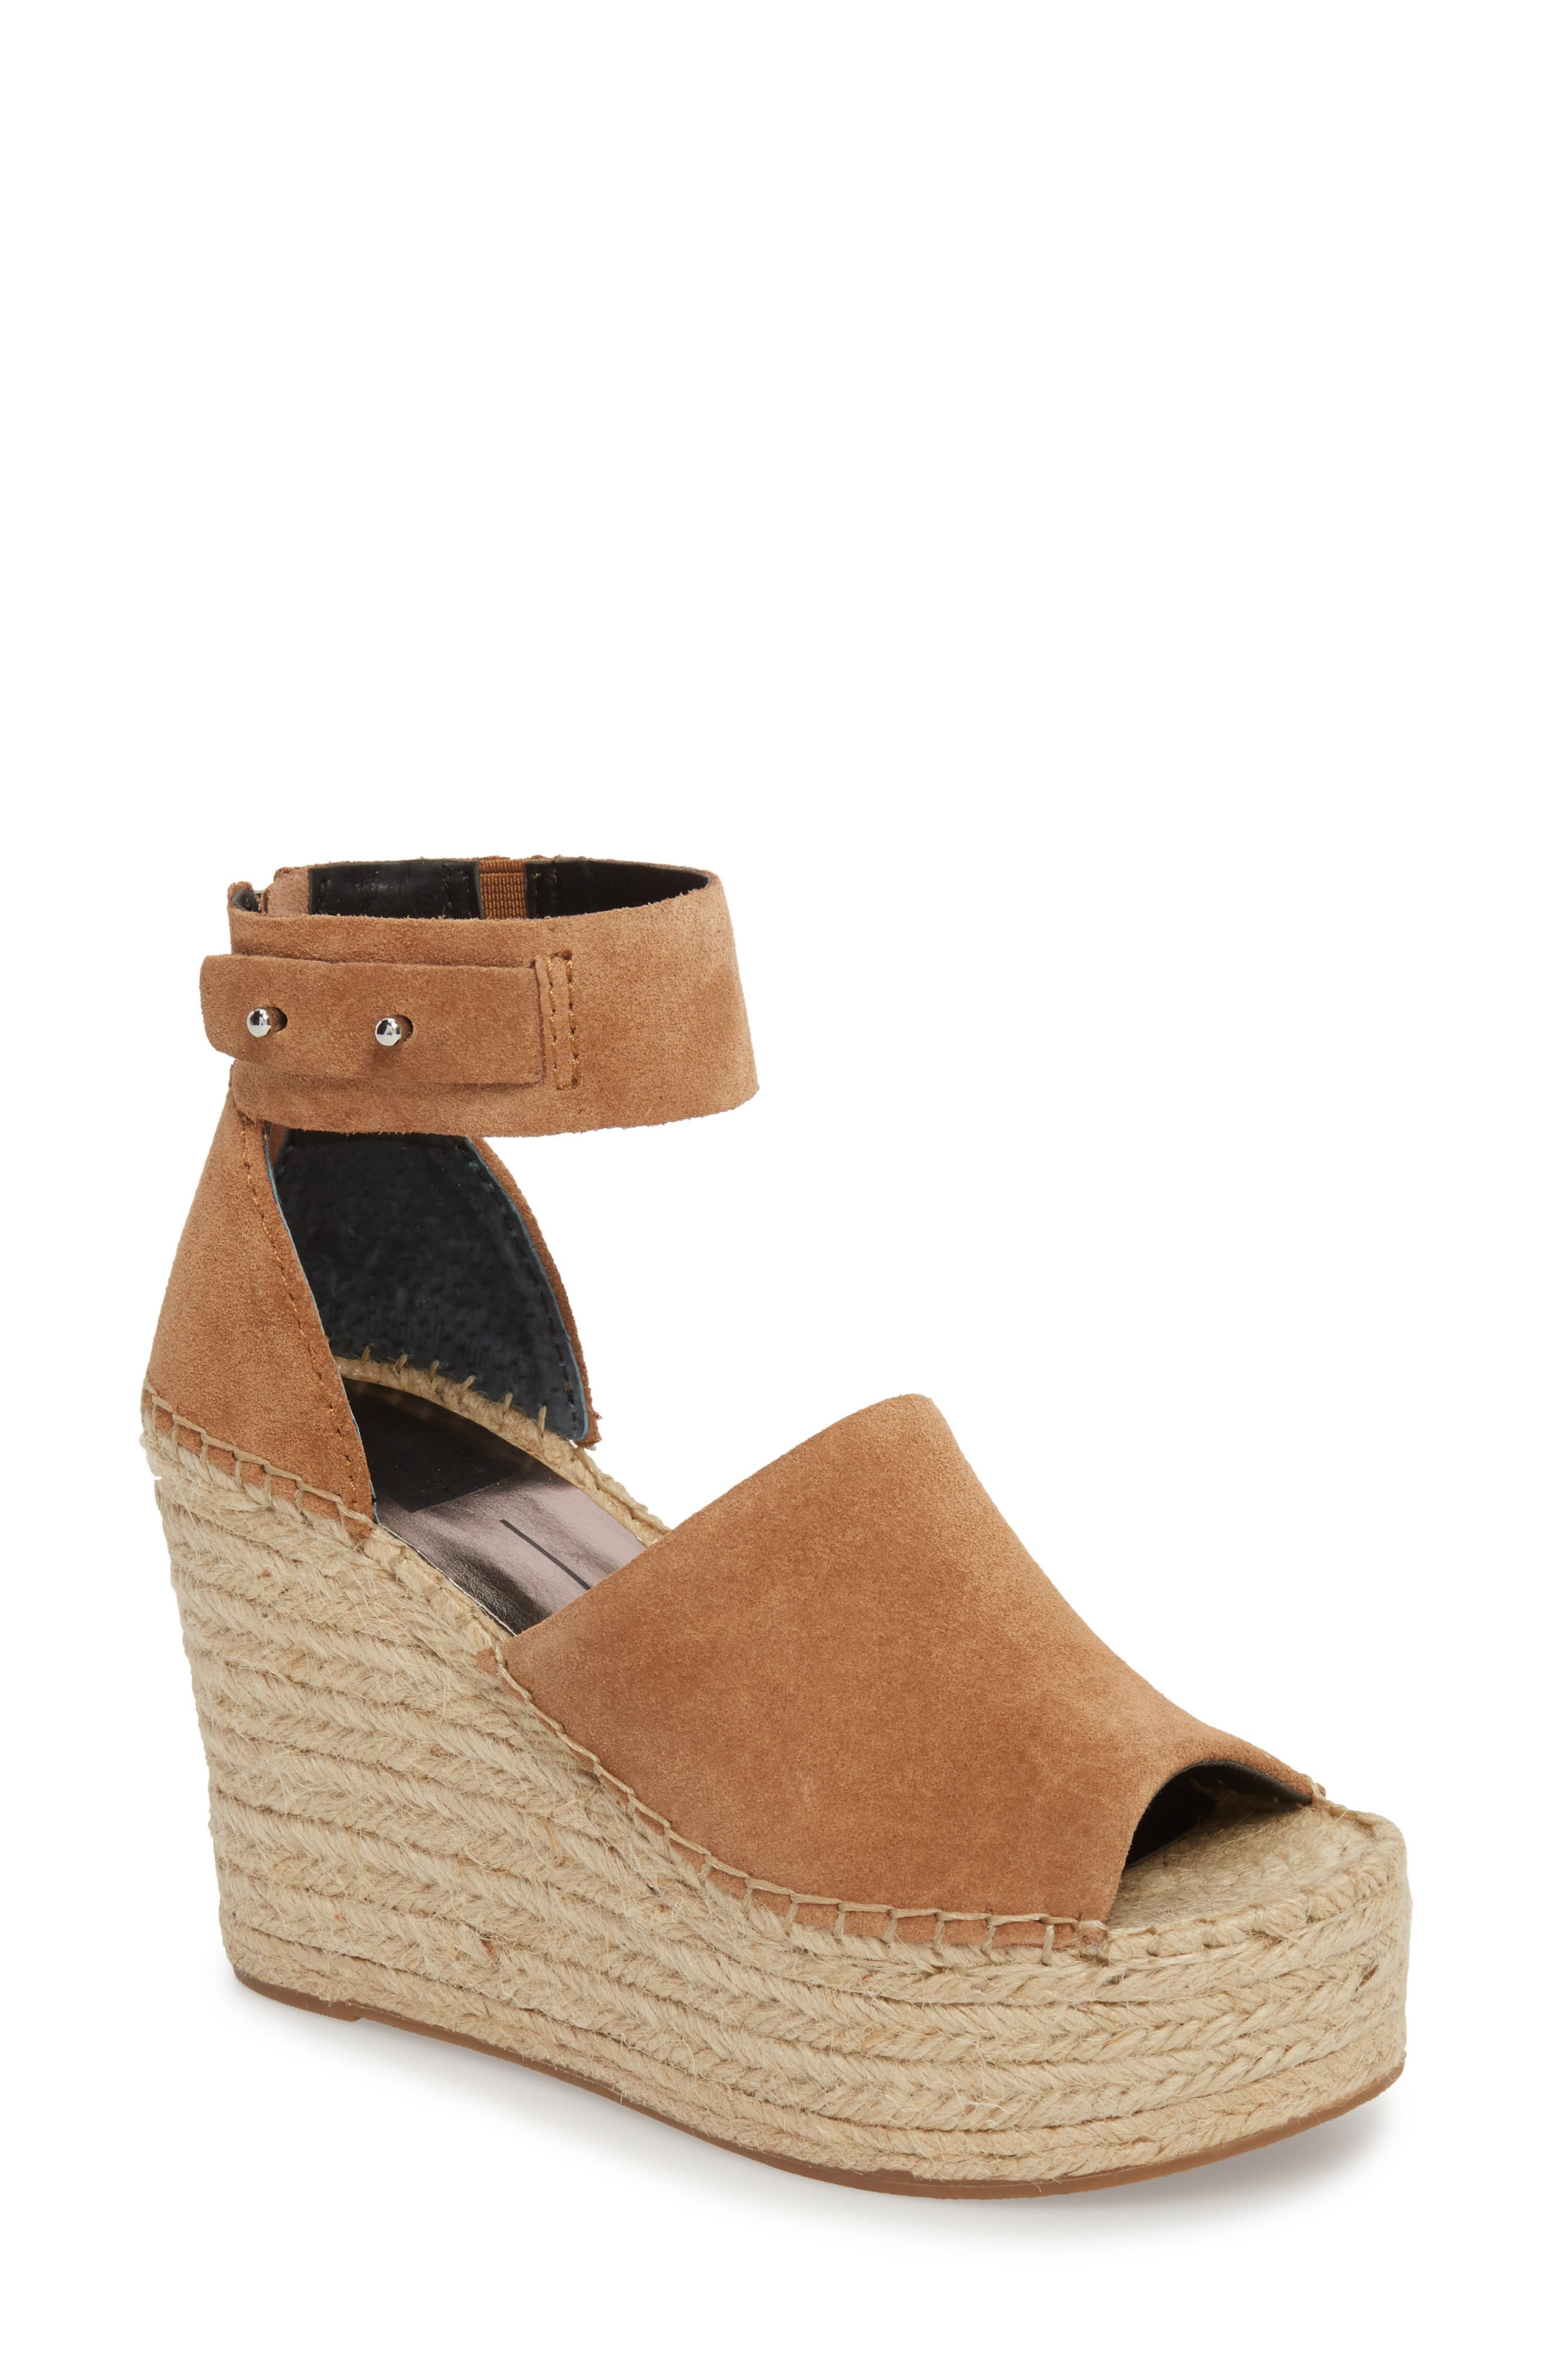 Straw Wedge Espadrille Sandal by Dolce Vita